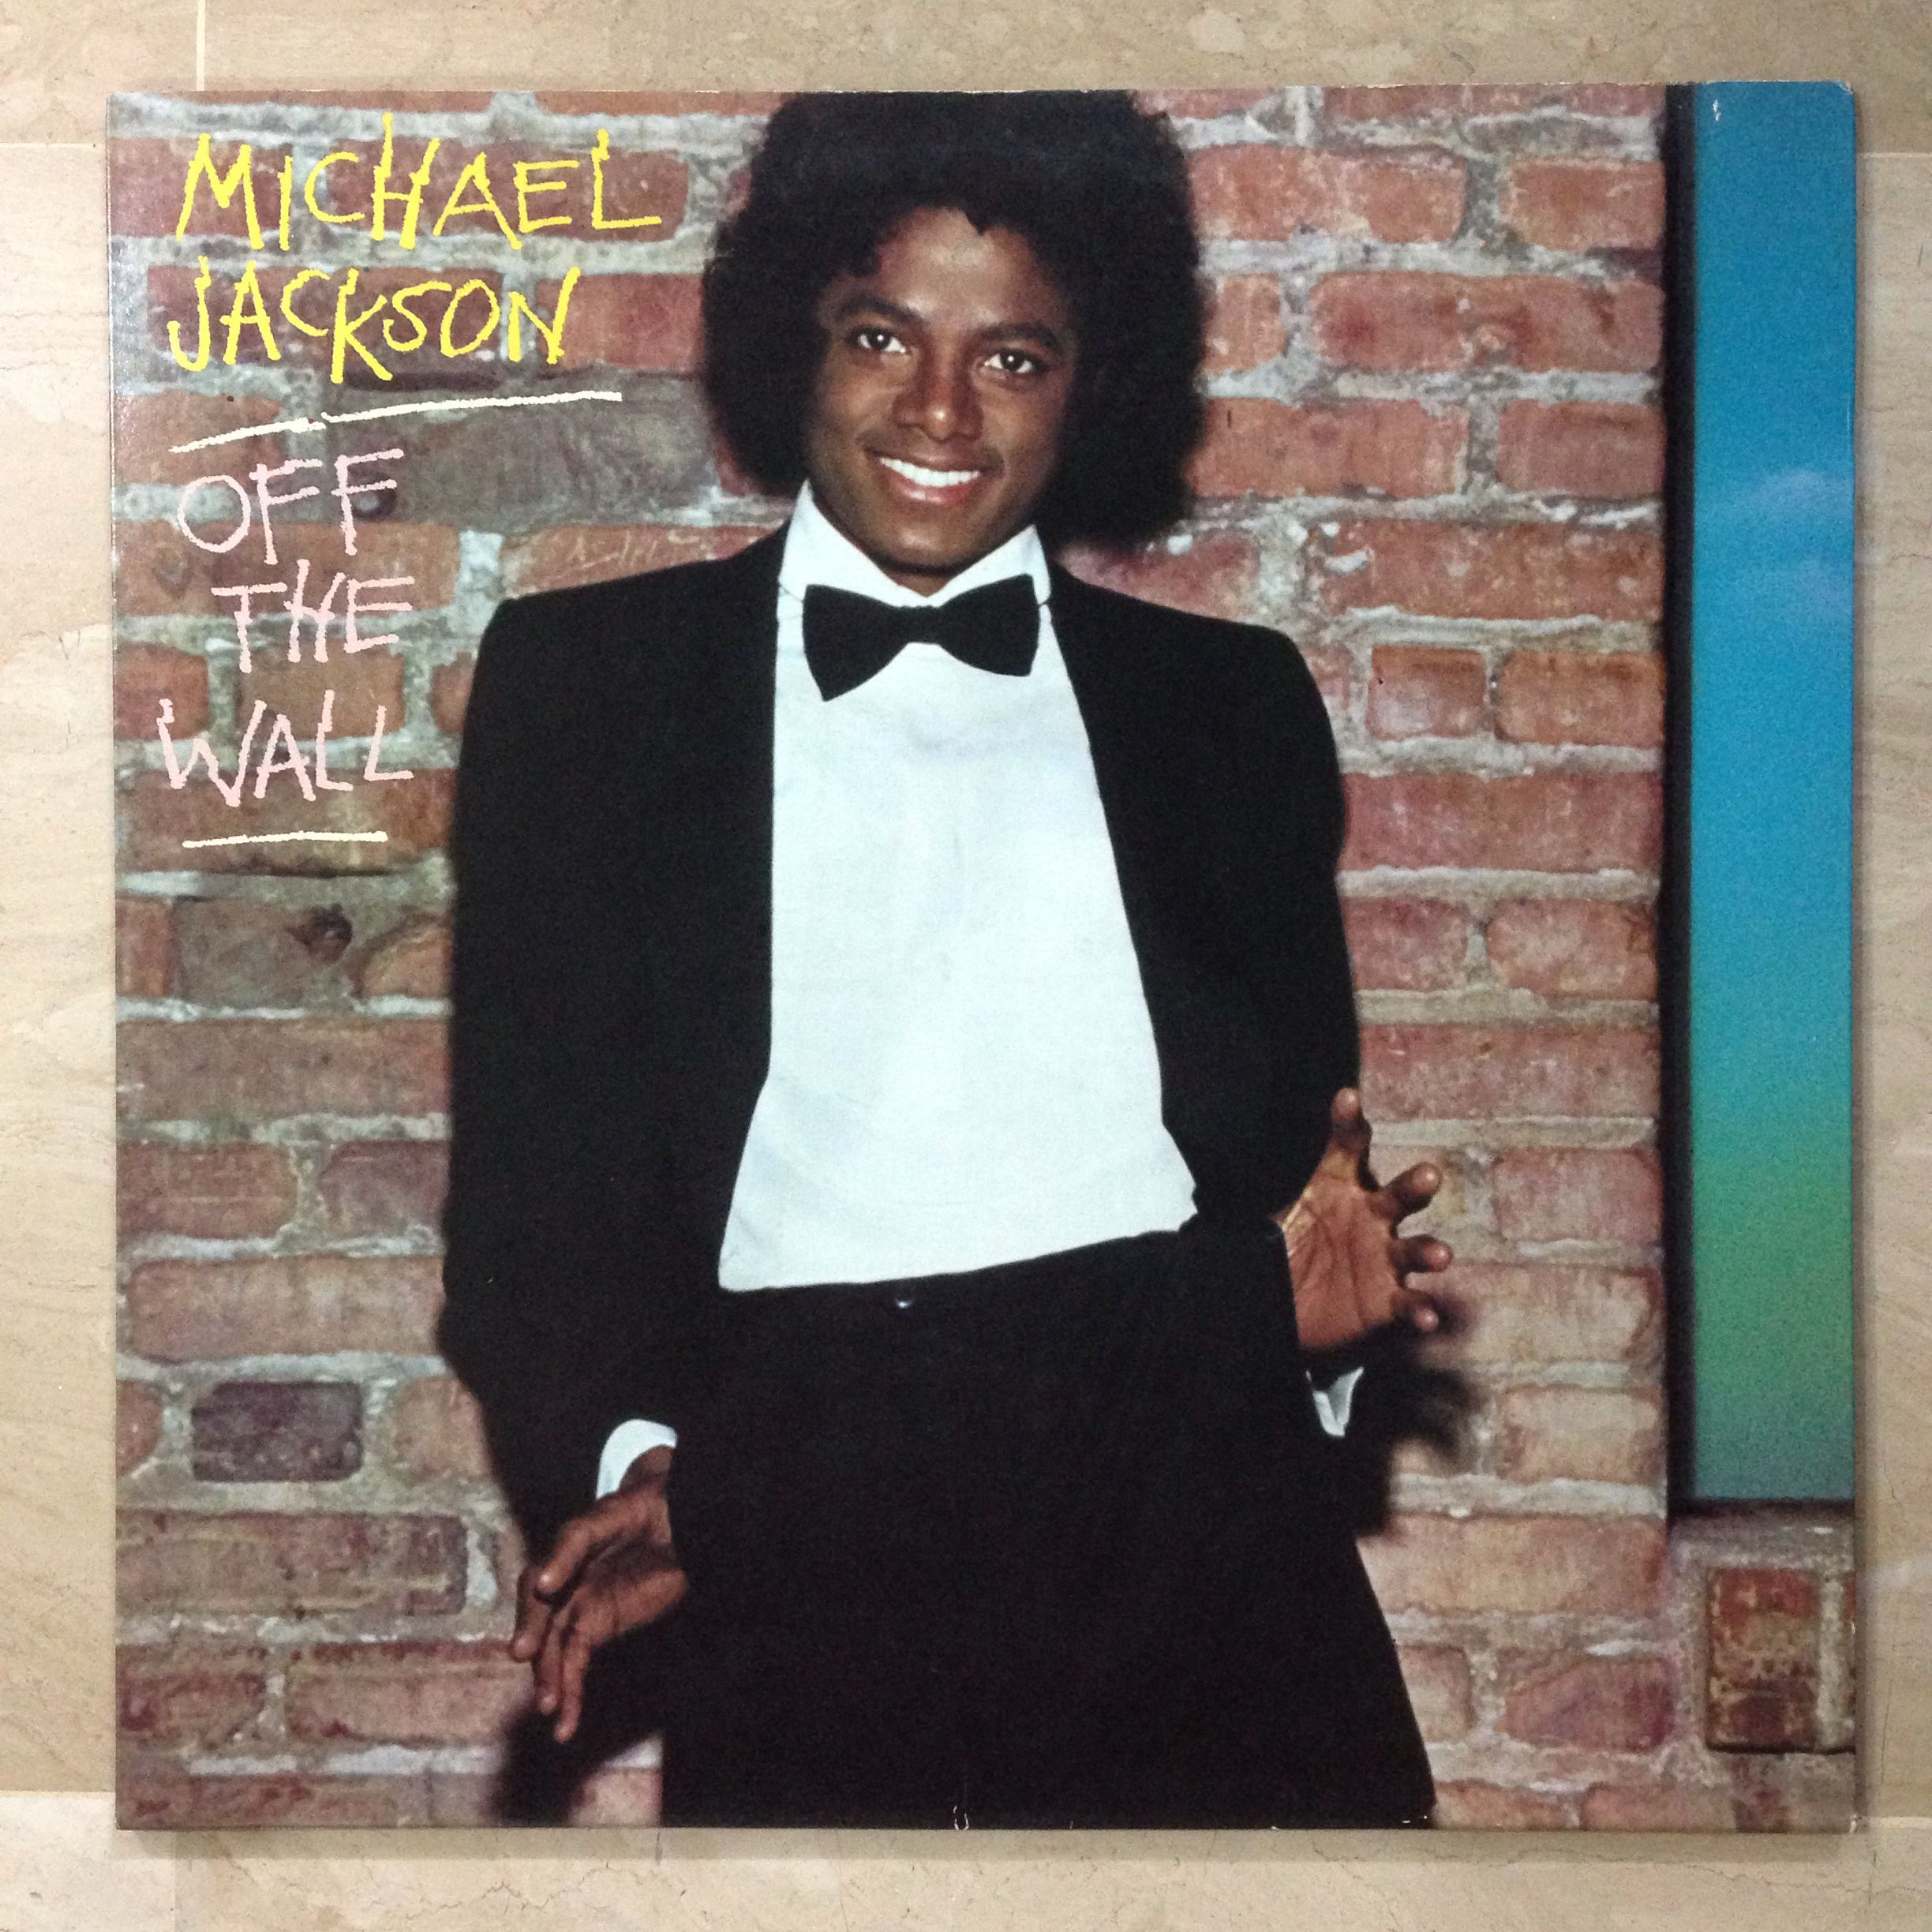 Michael Jackson Off The Wall Lp 1979 Front View Michael